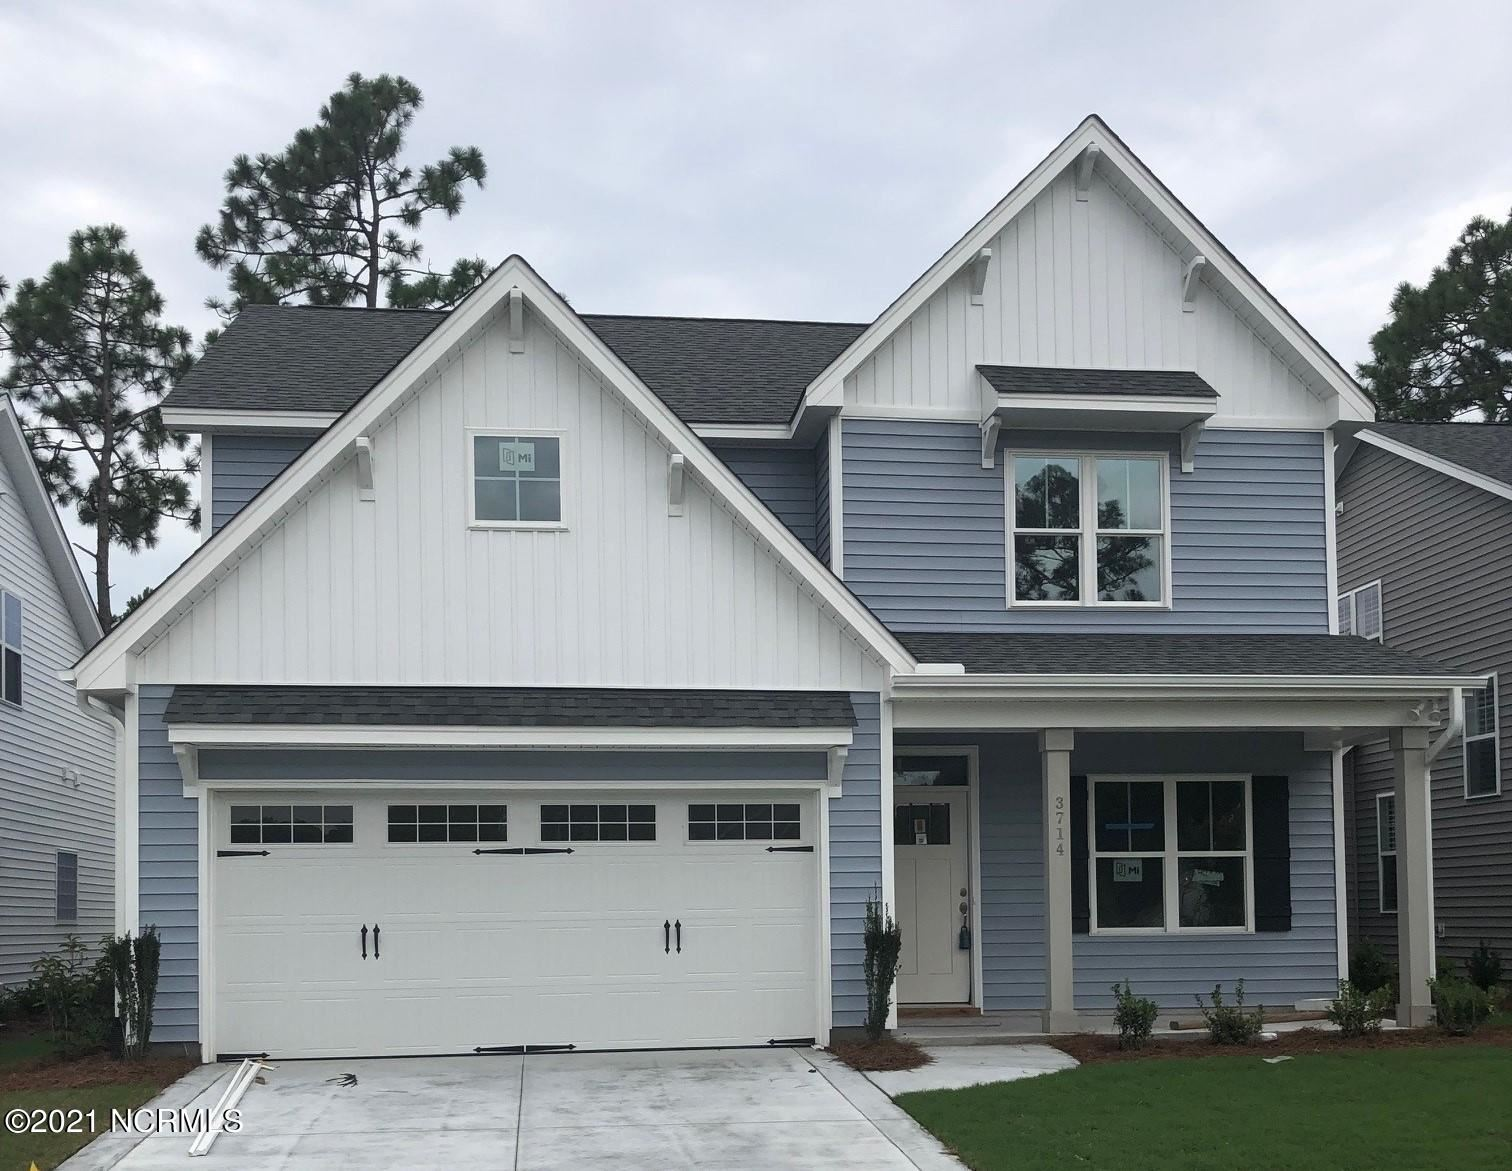 Photo for 3714 Spicetree Drive, Wilmington, NC 28412 (MLS # 100270049)